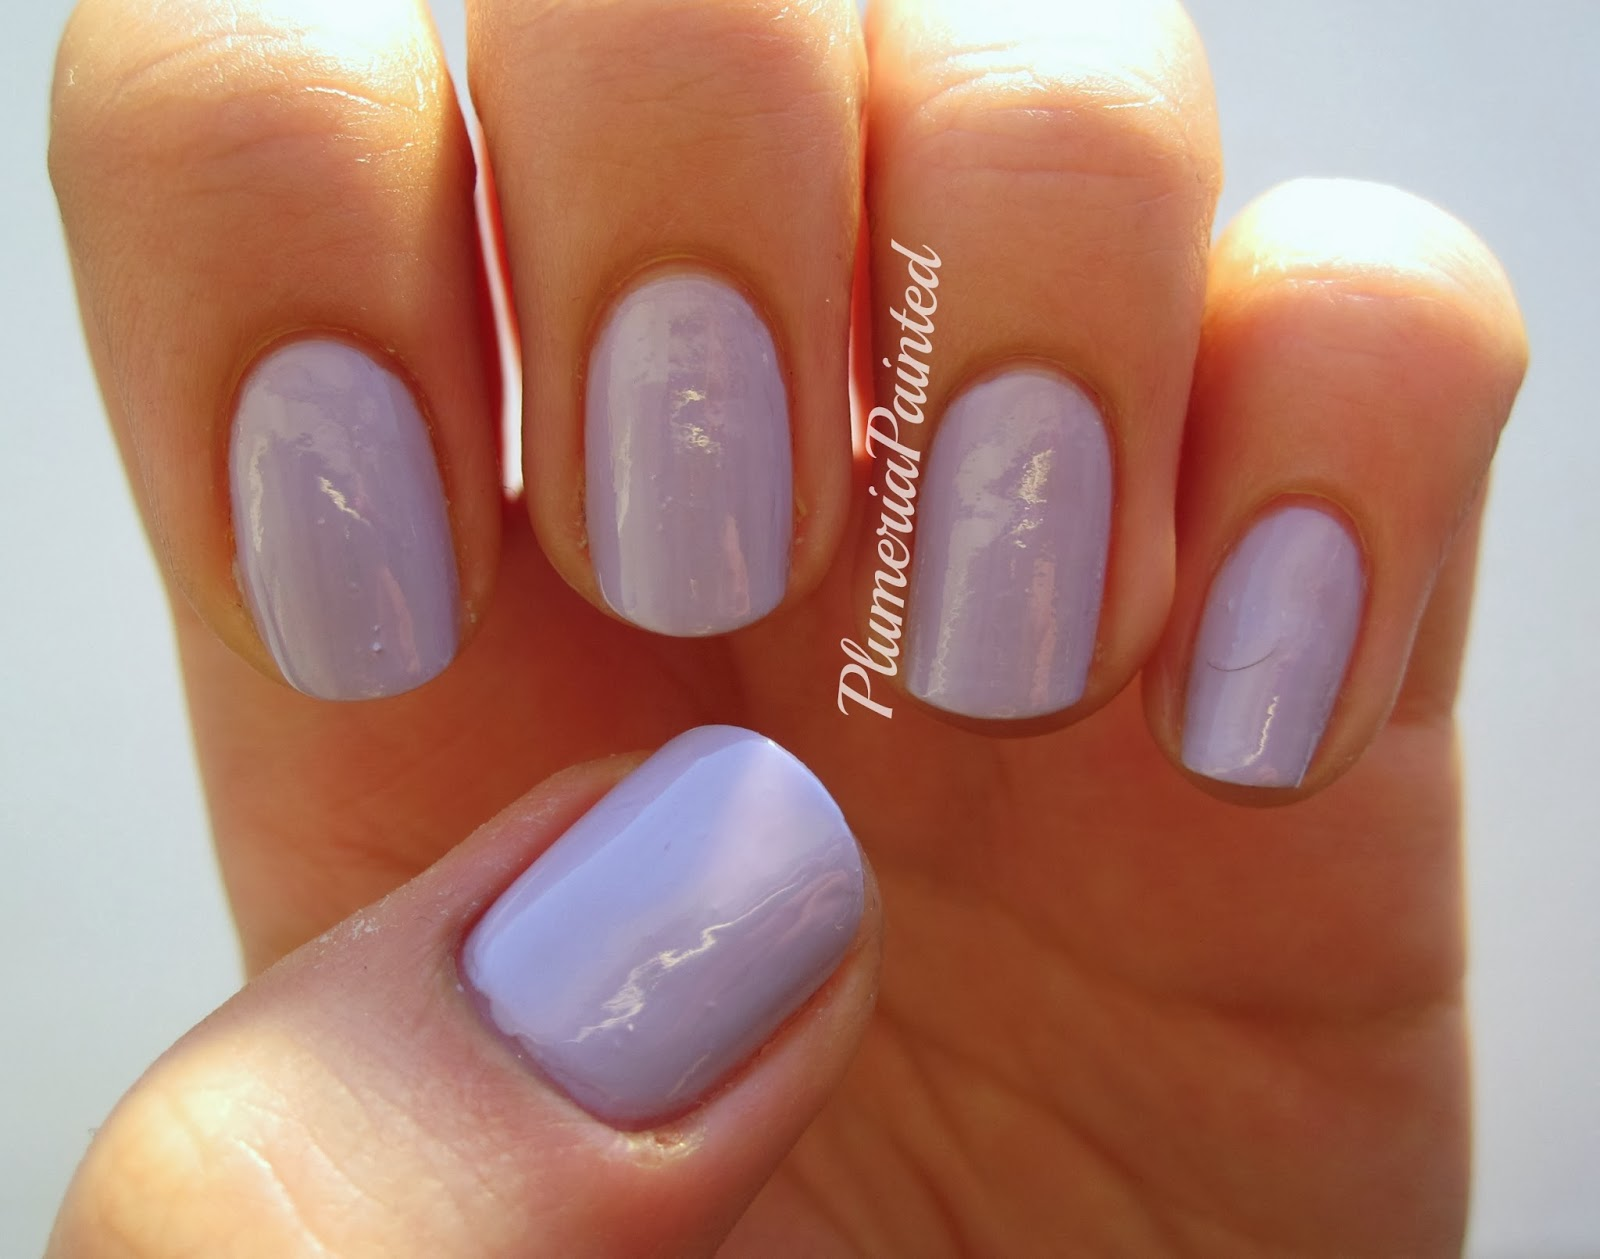 Essie Nail Polish Lilacism - Absolute cycle